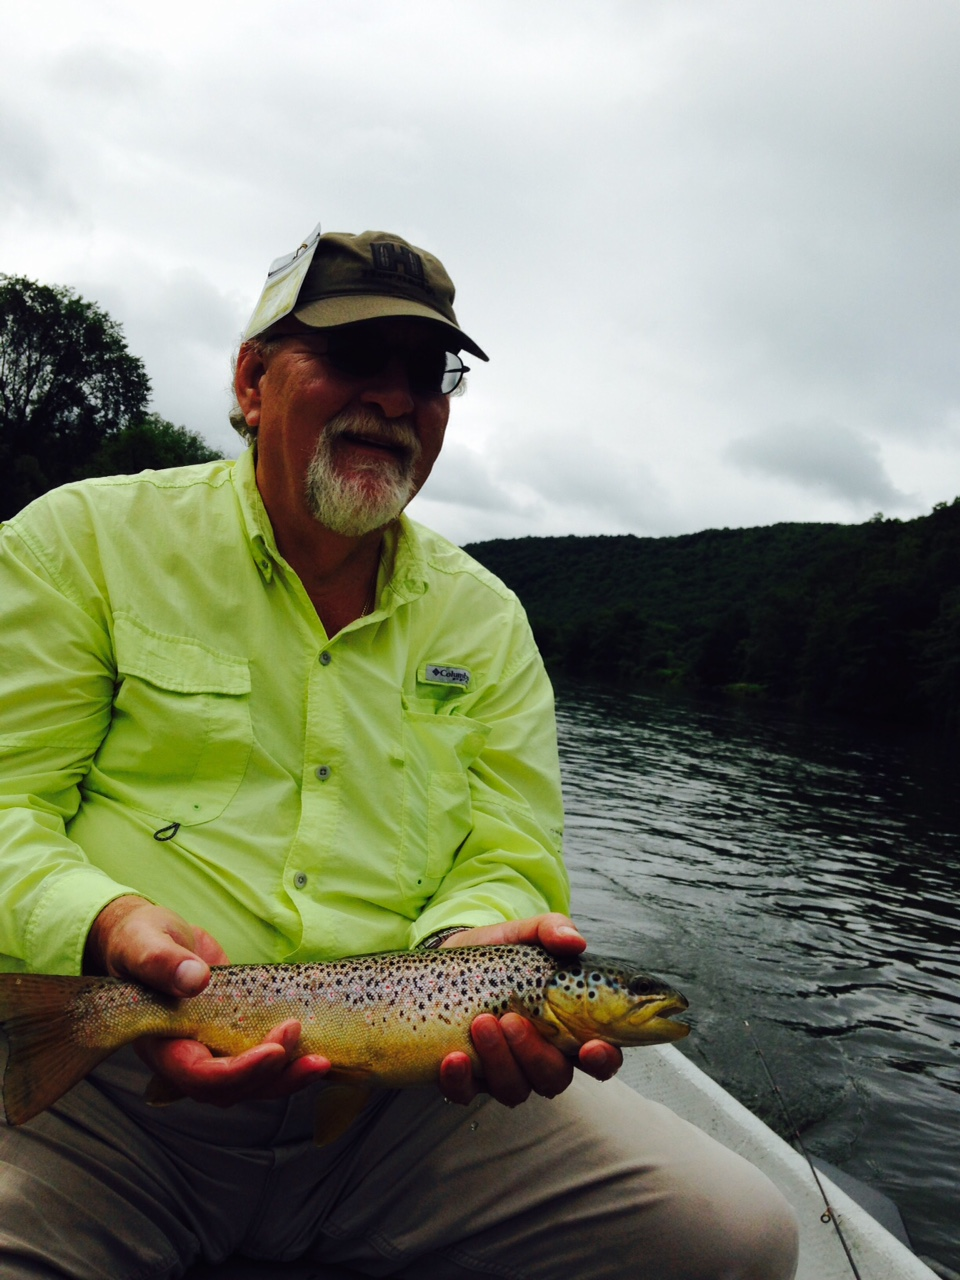 Steve with one of many nice cookie cutter Brown trout!